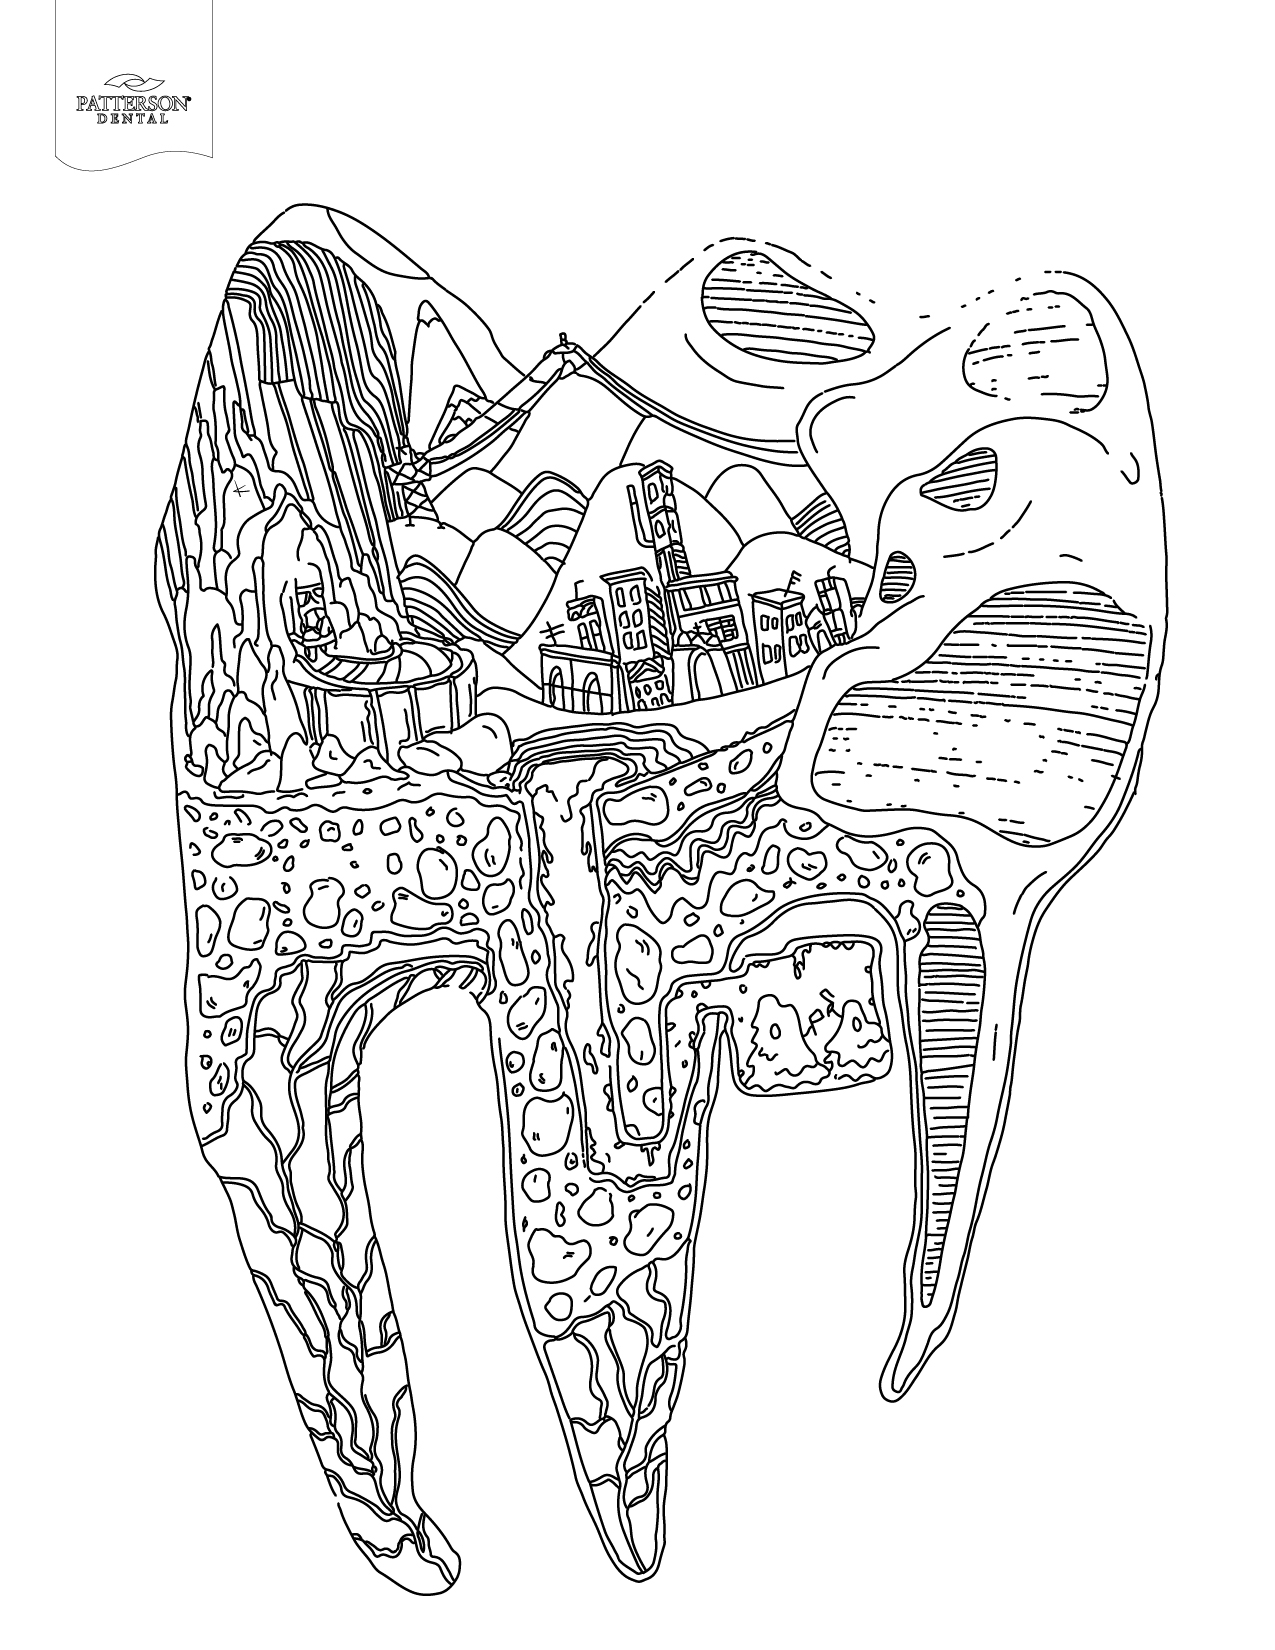 full size coloring pages full size coloring pages to print at getcoloringscom size pages full coloring